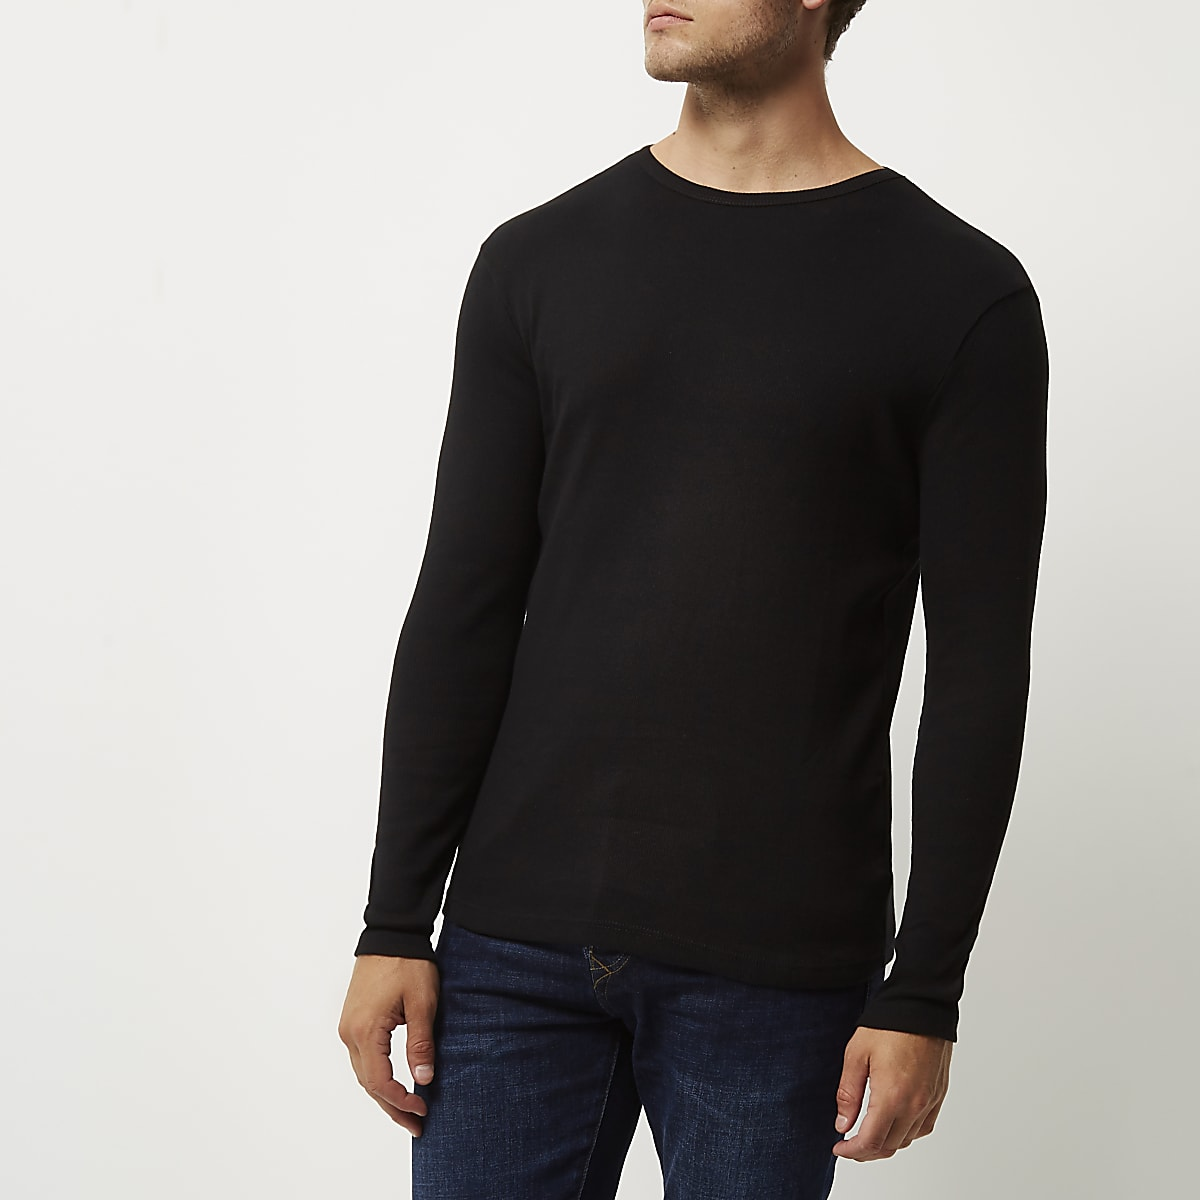 6d55364cd0ae Black ribbed slim fit long sleeve T-shirt - Long Sleeve T-Shirts - T-Shirts  & Vests - men